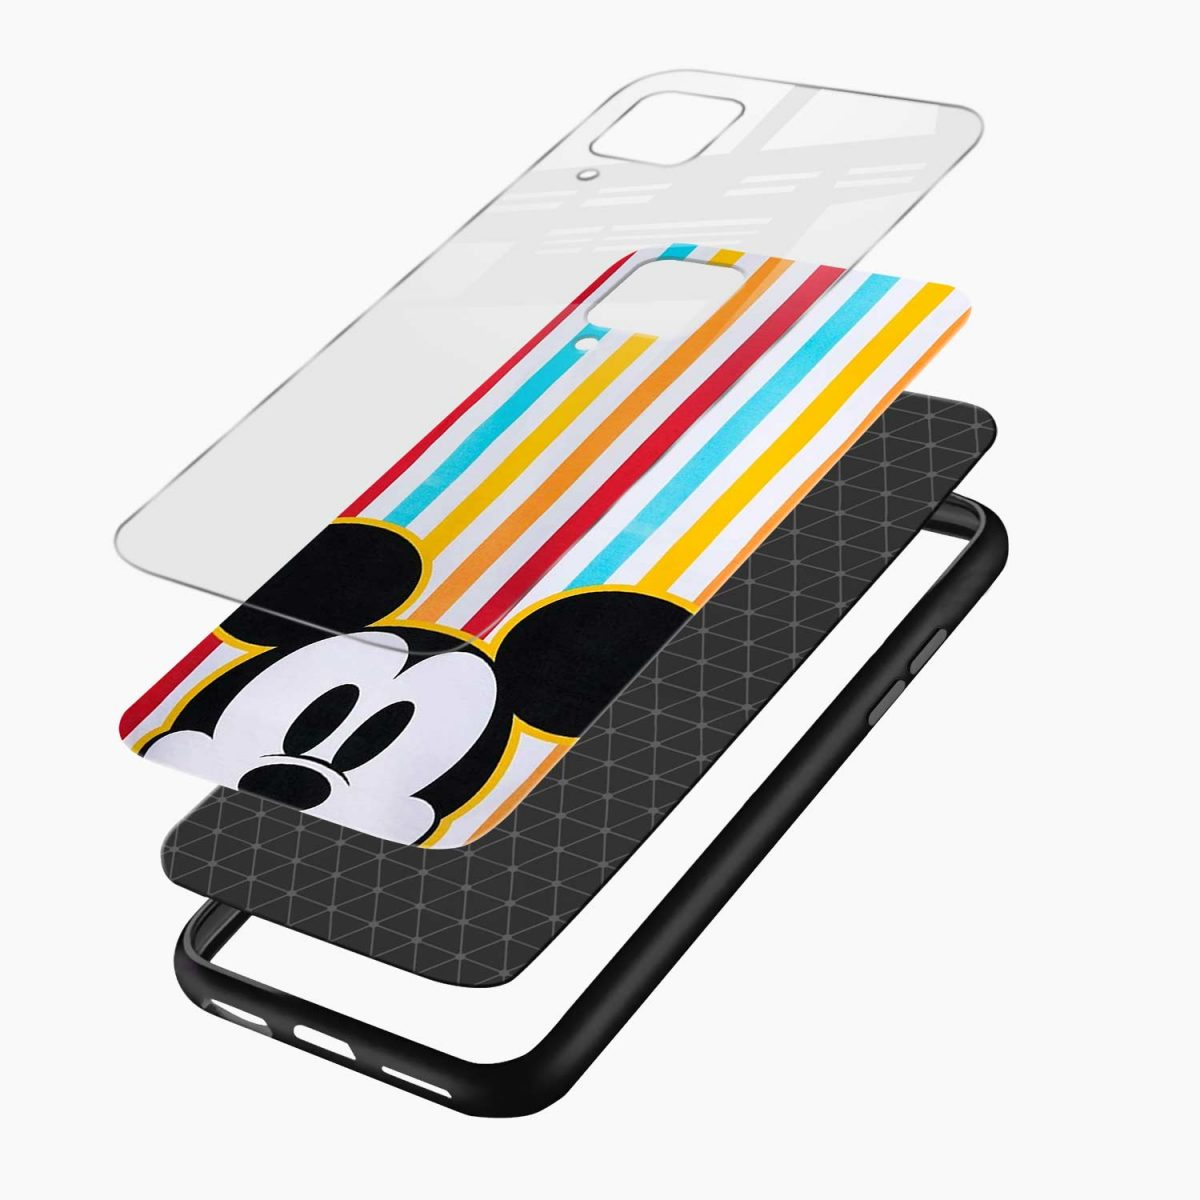 rigid spy mickey mouse layers view samsung galaxy a12 back cover